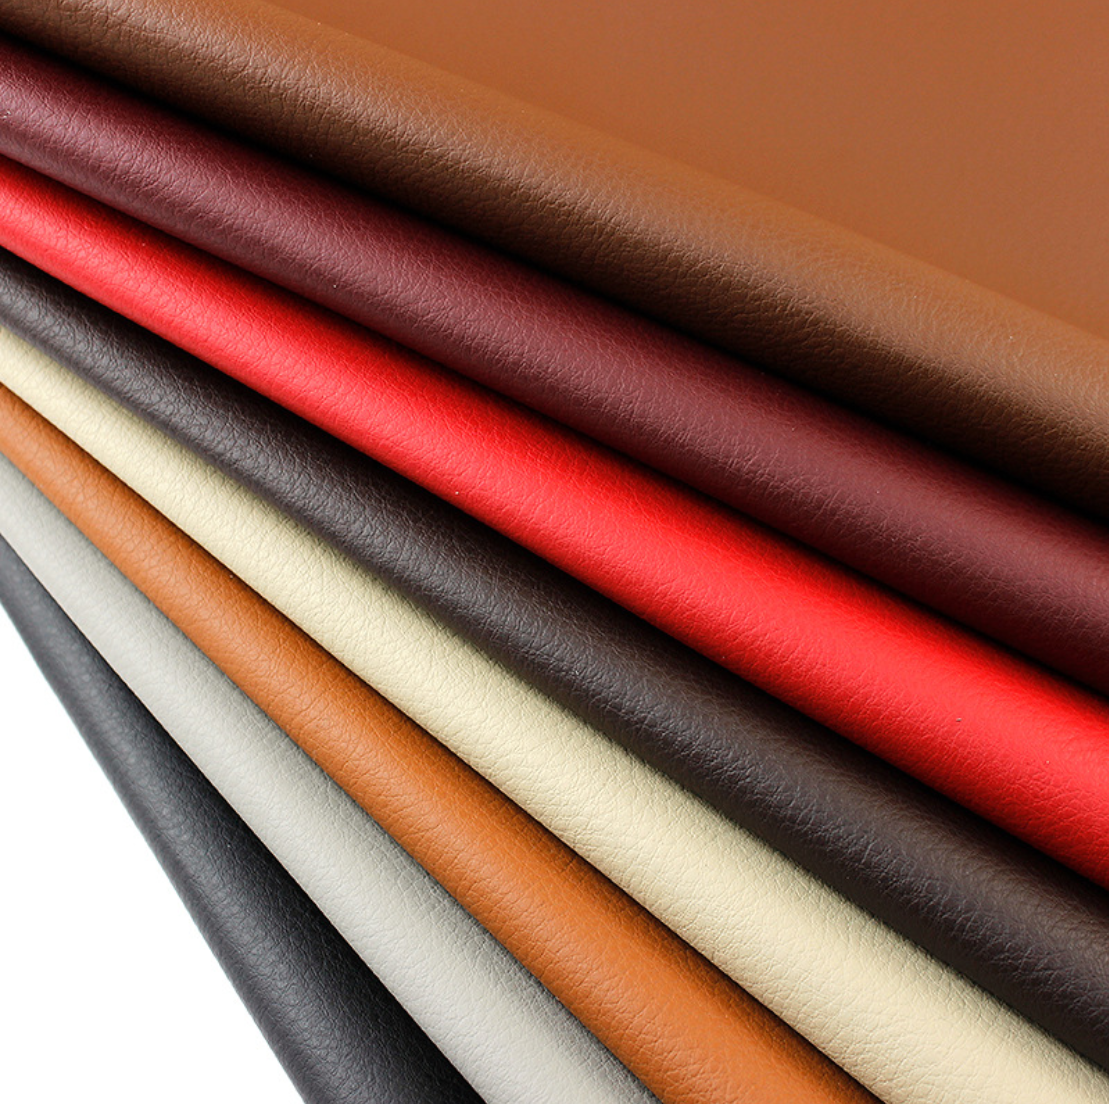 Factory Wholesale PU Microfiber Leather For Chair Hand Bag Sofa Headboard Furniture Stationery Packing